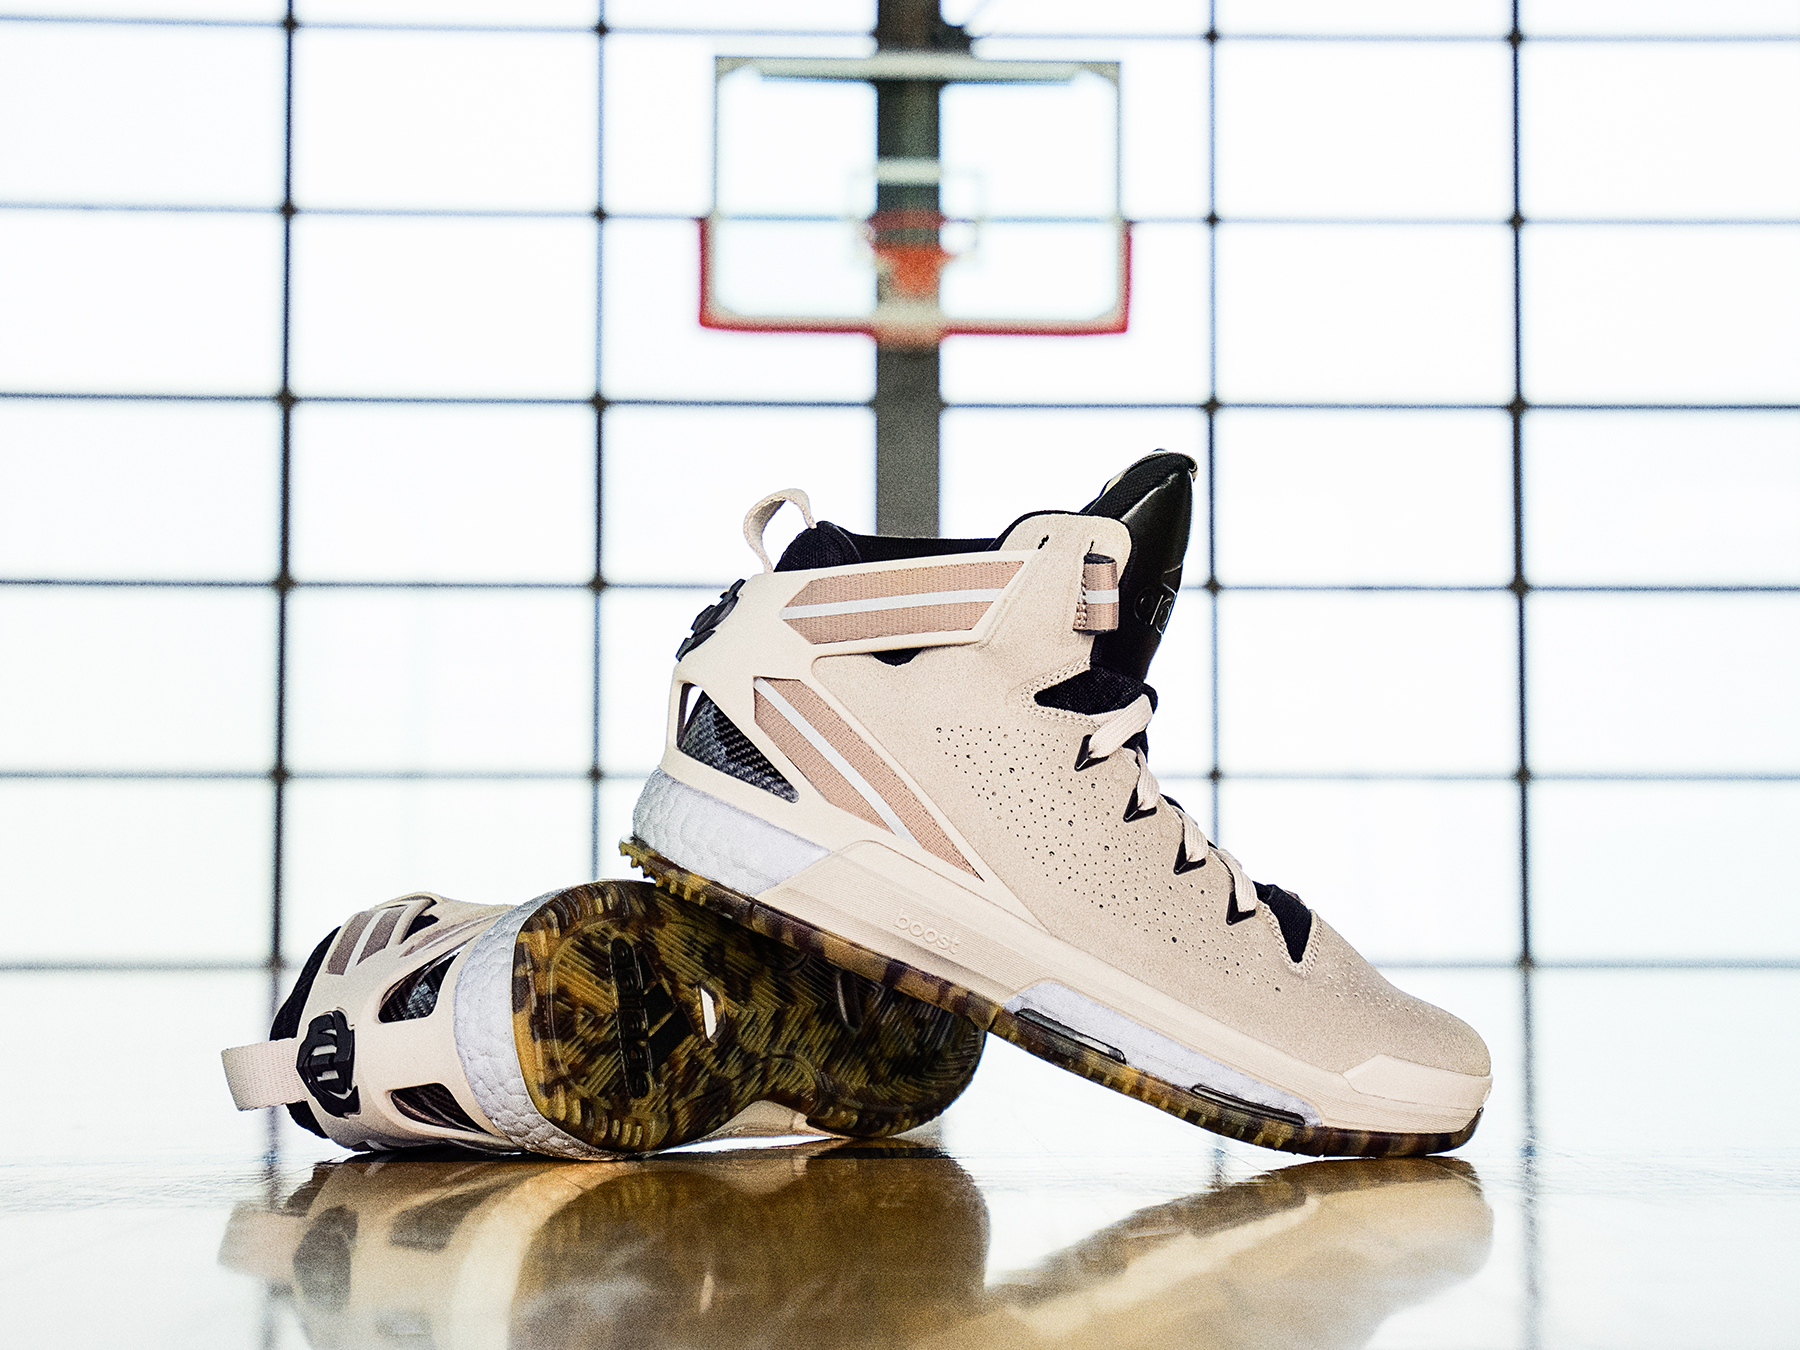 An Official Look at the adidas D Rose 10 Year WearTesters